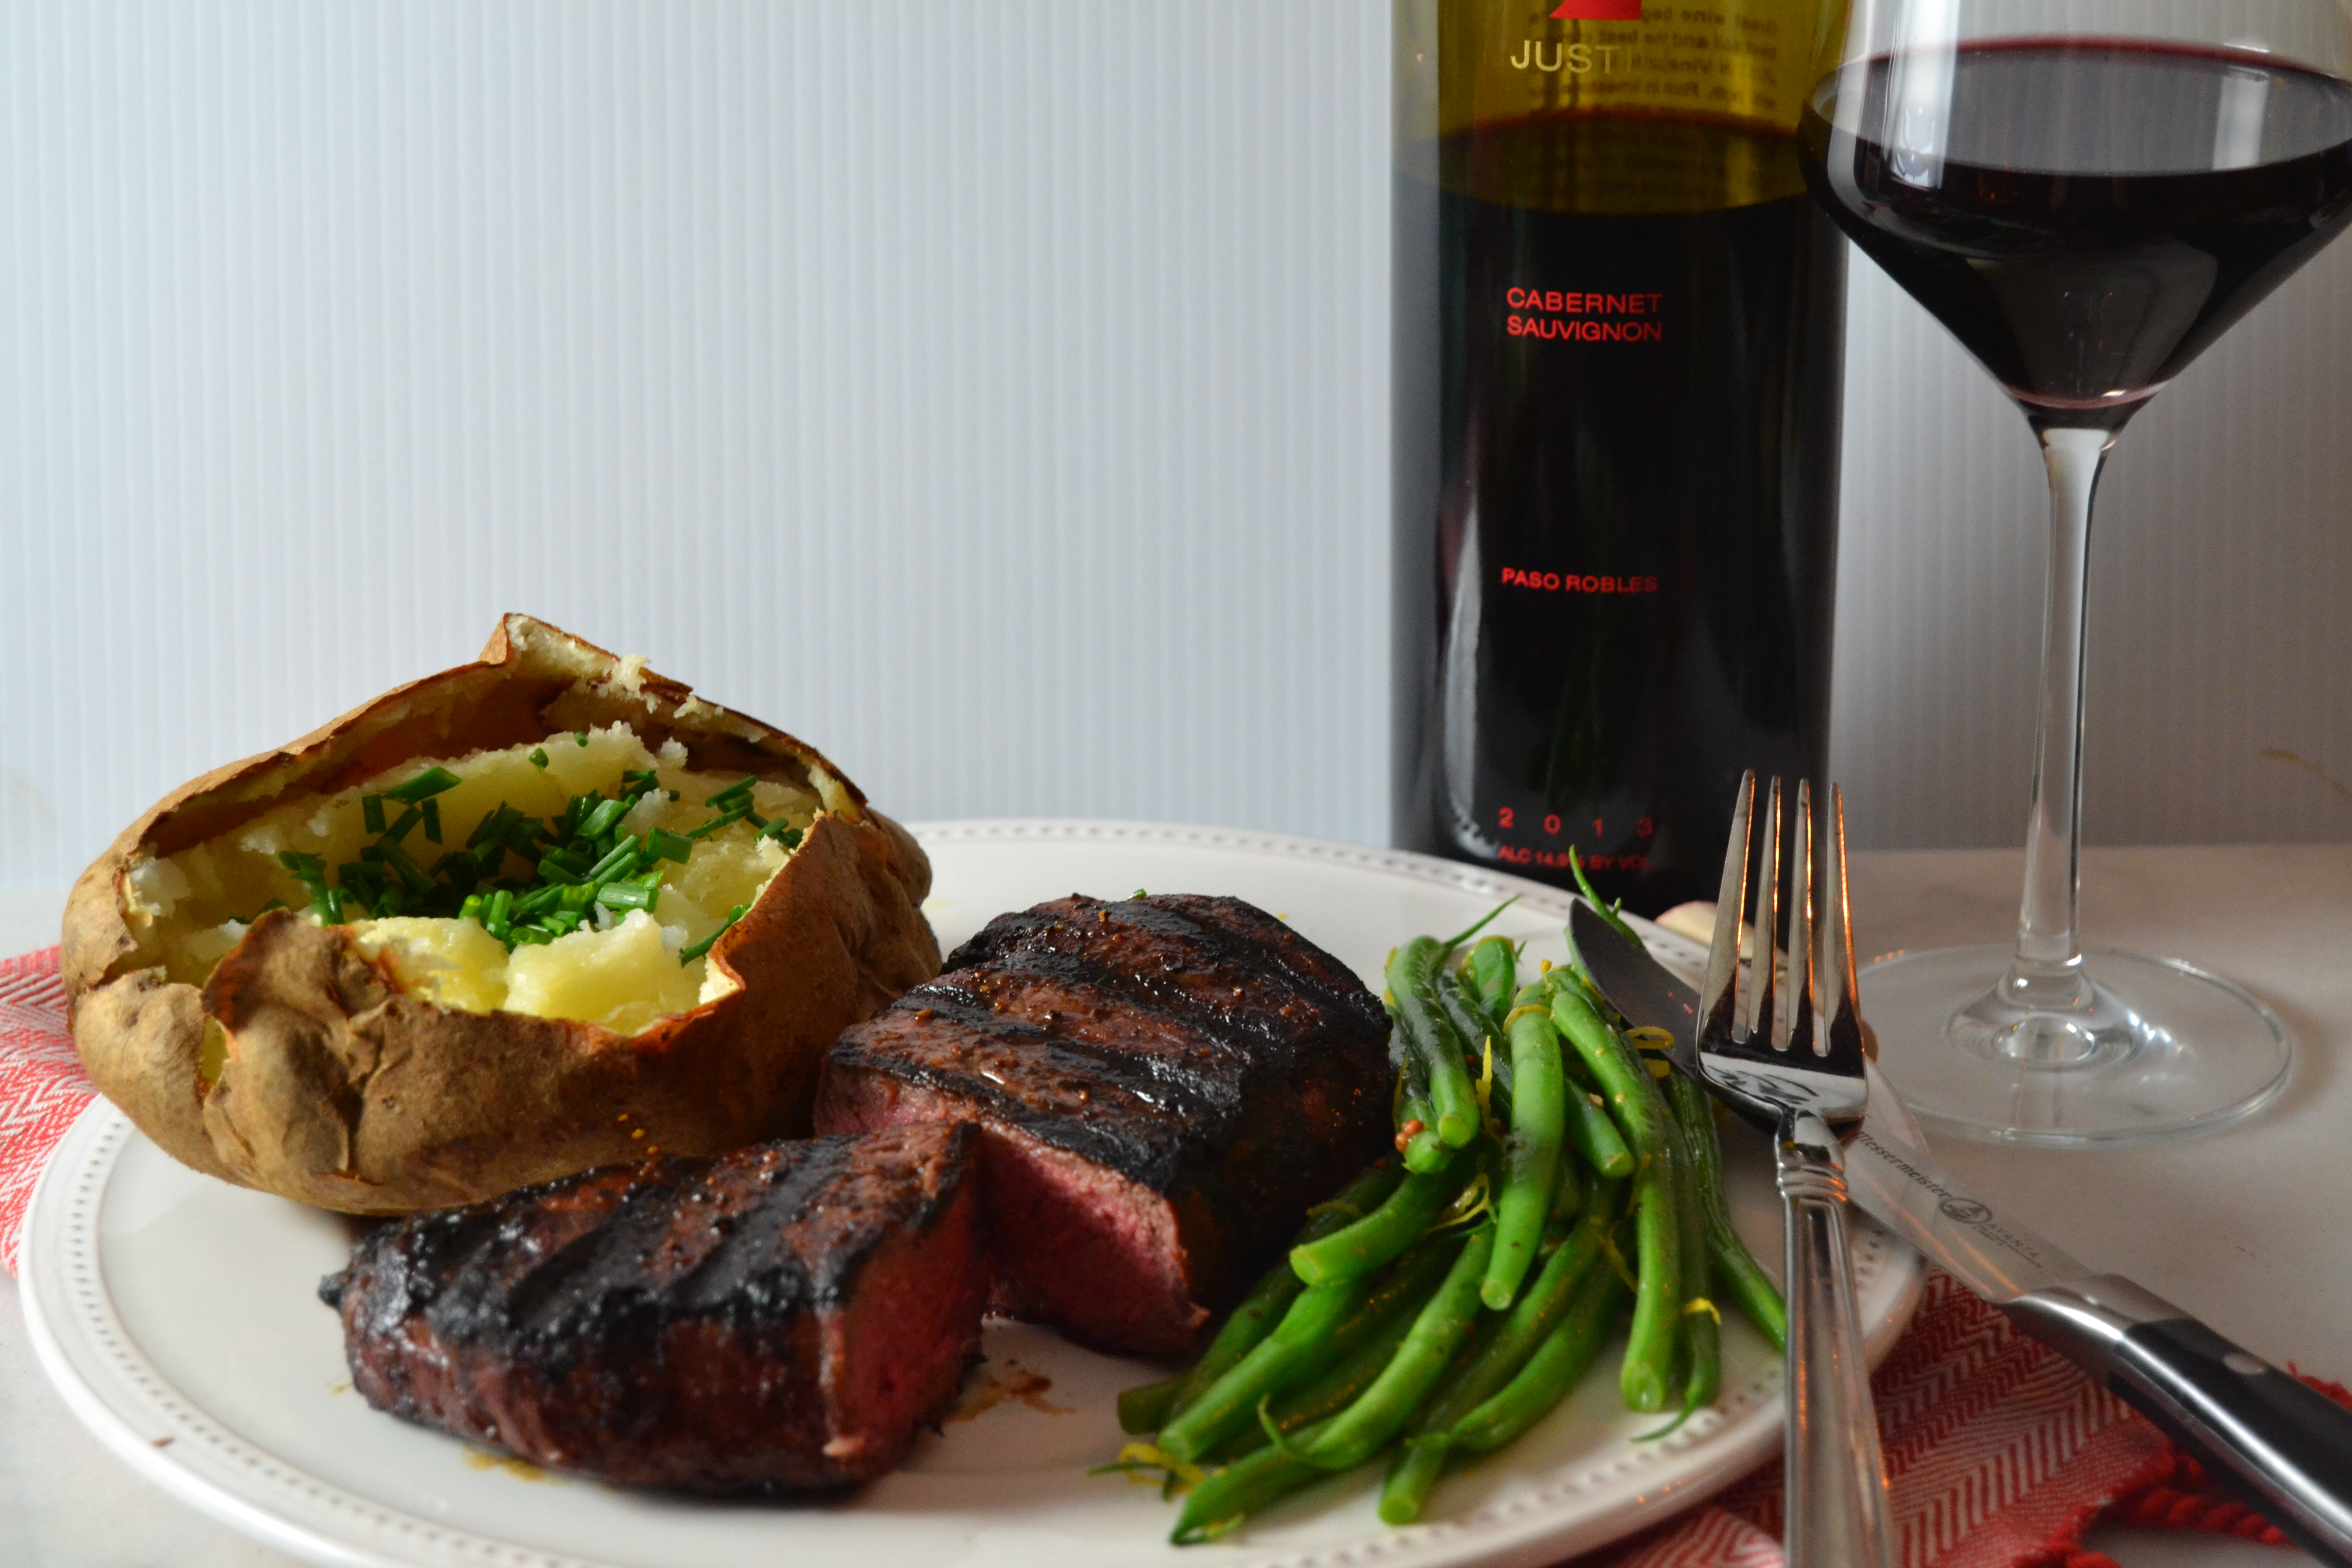 Romance your Valentine this year with an intimate steakhouse dinner at home